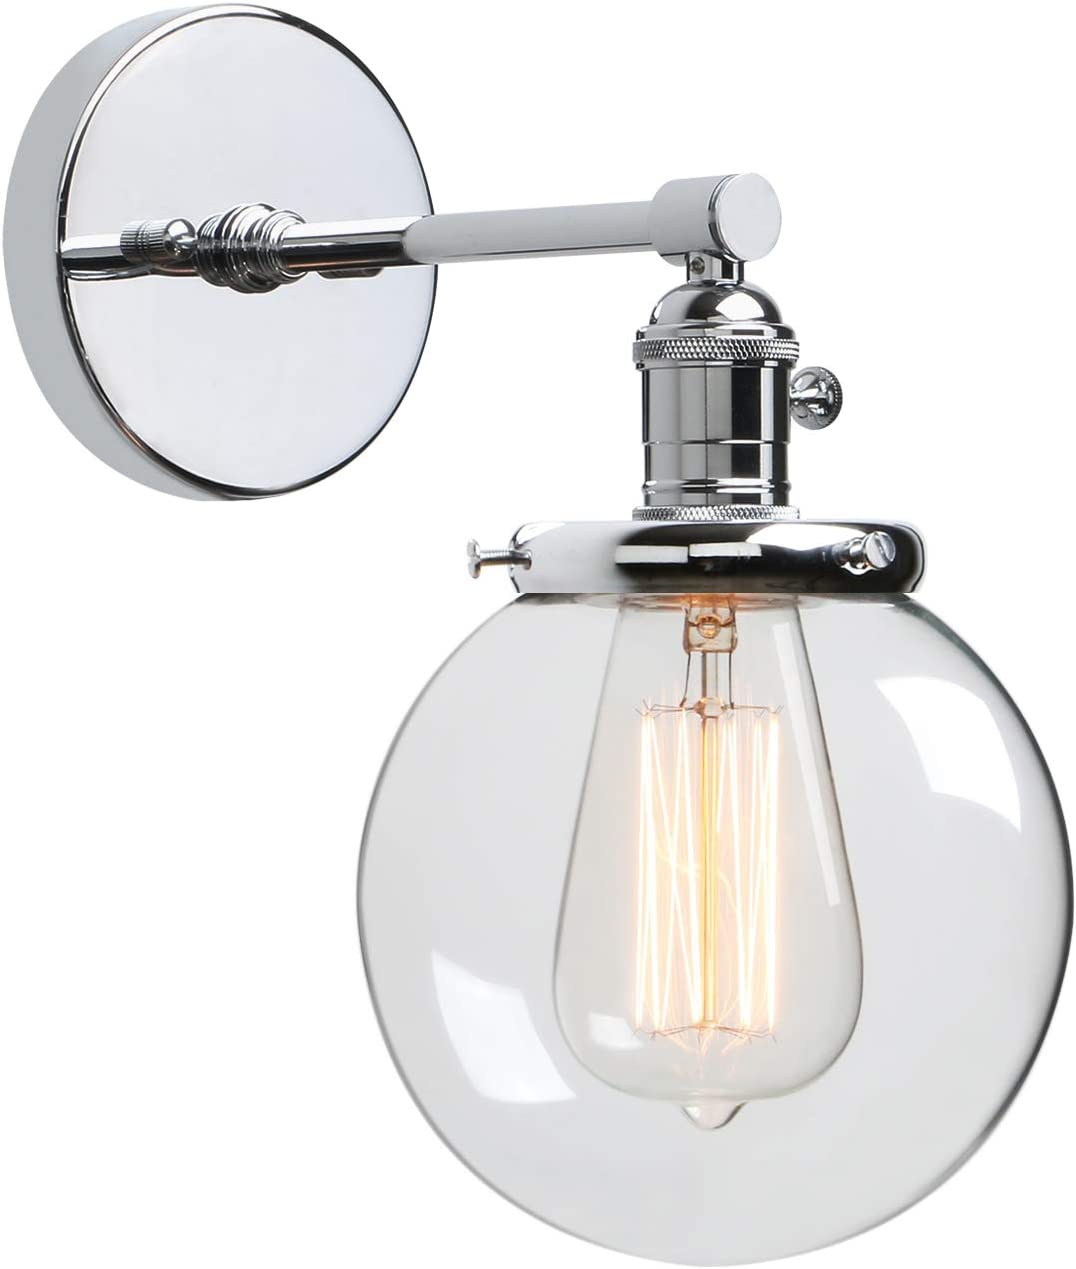 Phansthy Industrial Wall Light Globe Inch Seasonal Wrap Max 73% OFF Introduction 5.9 with C Sconce